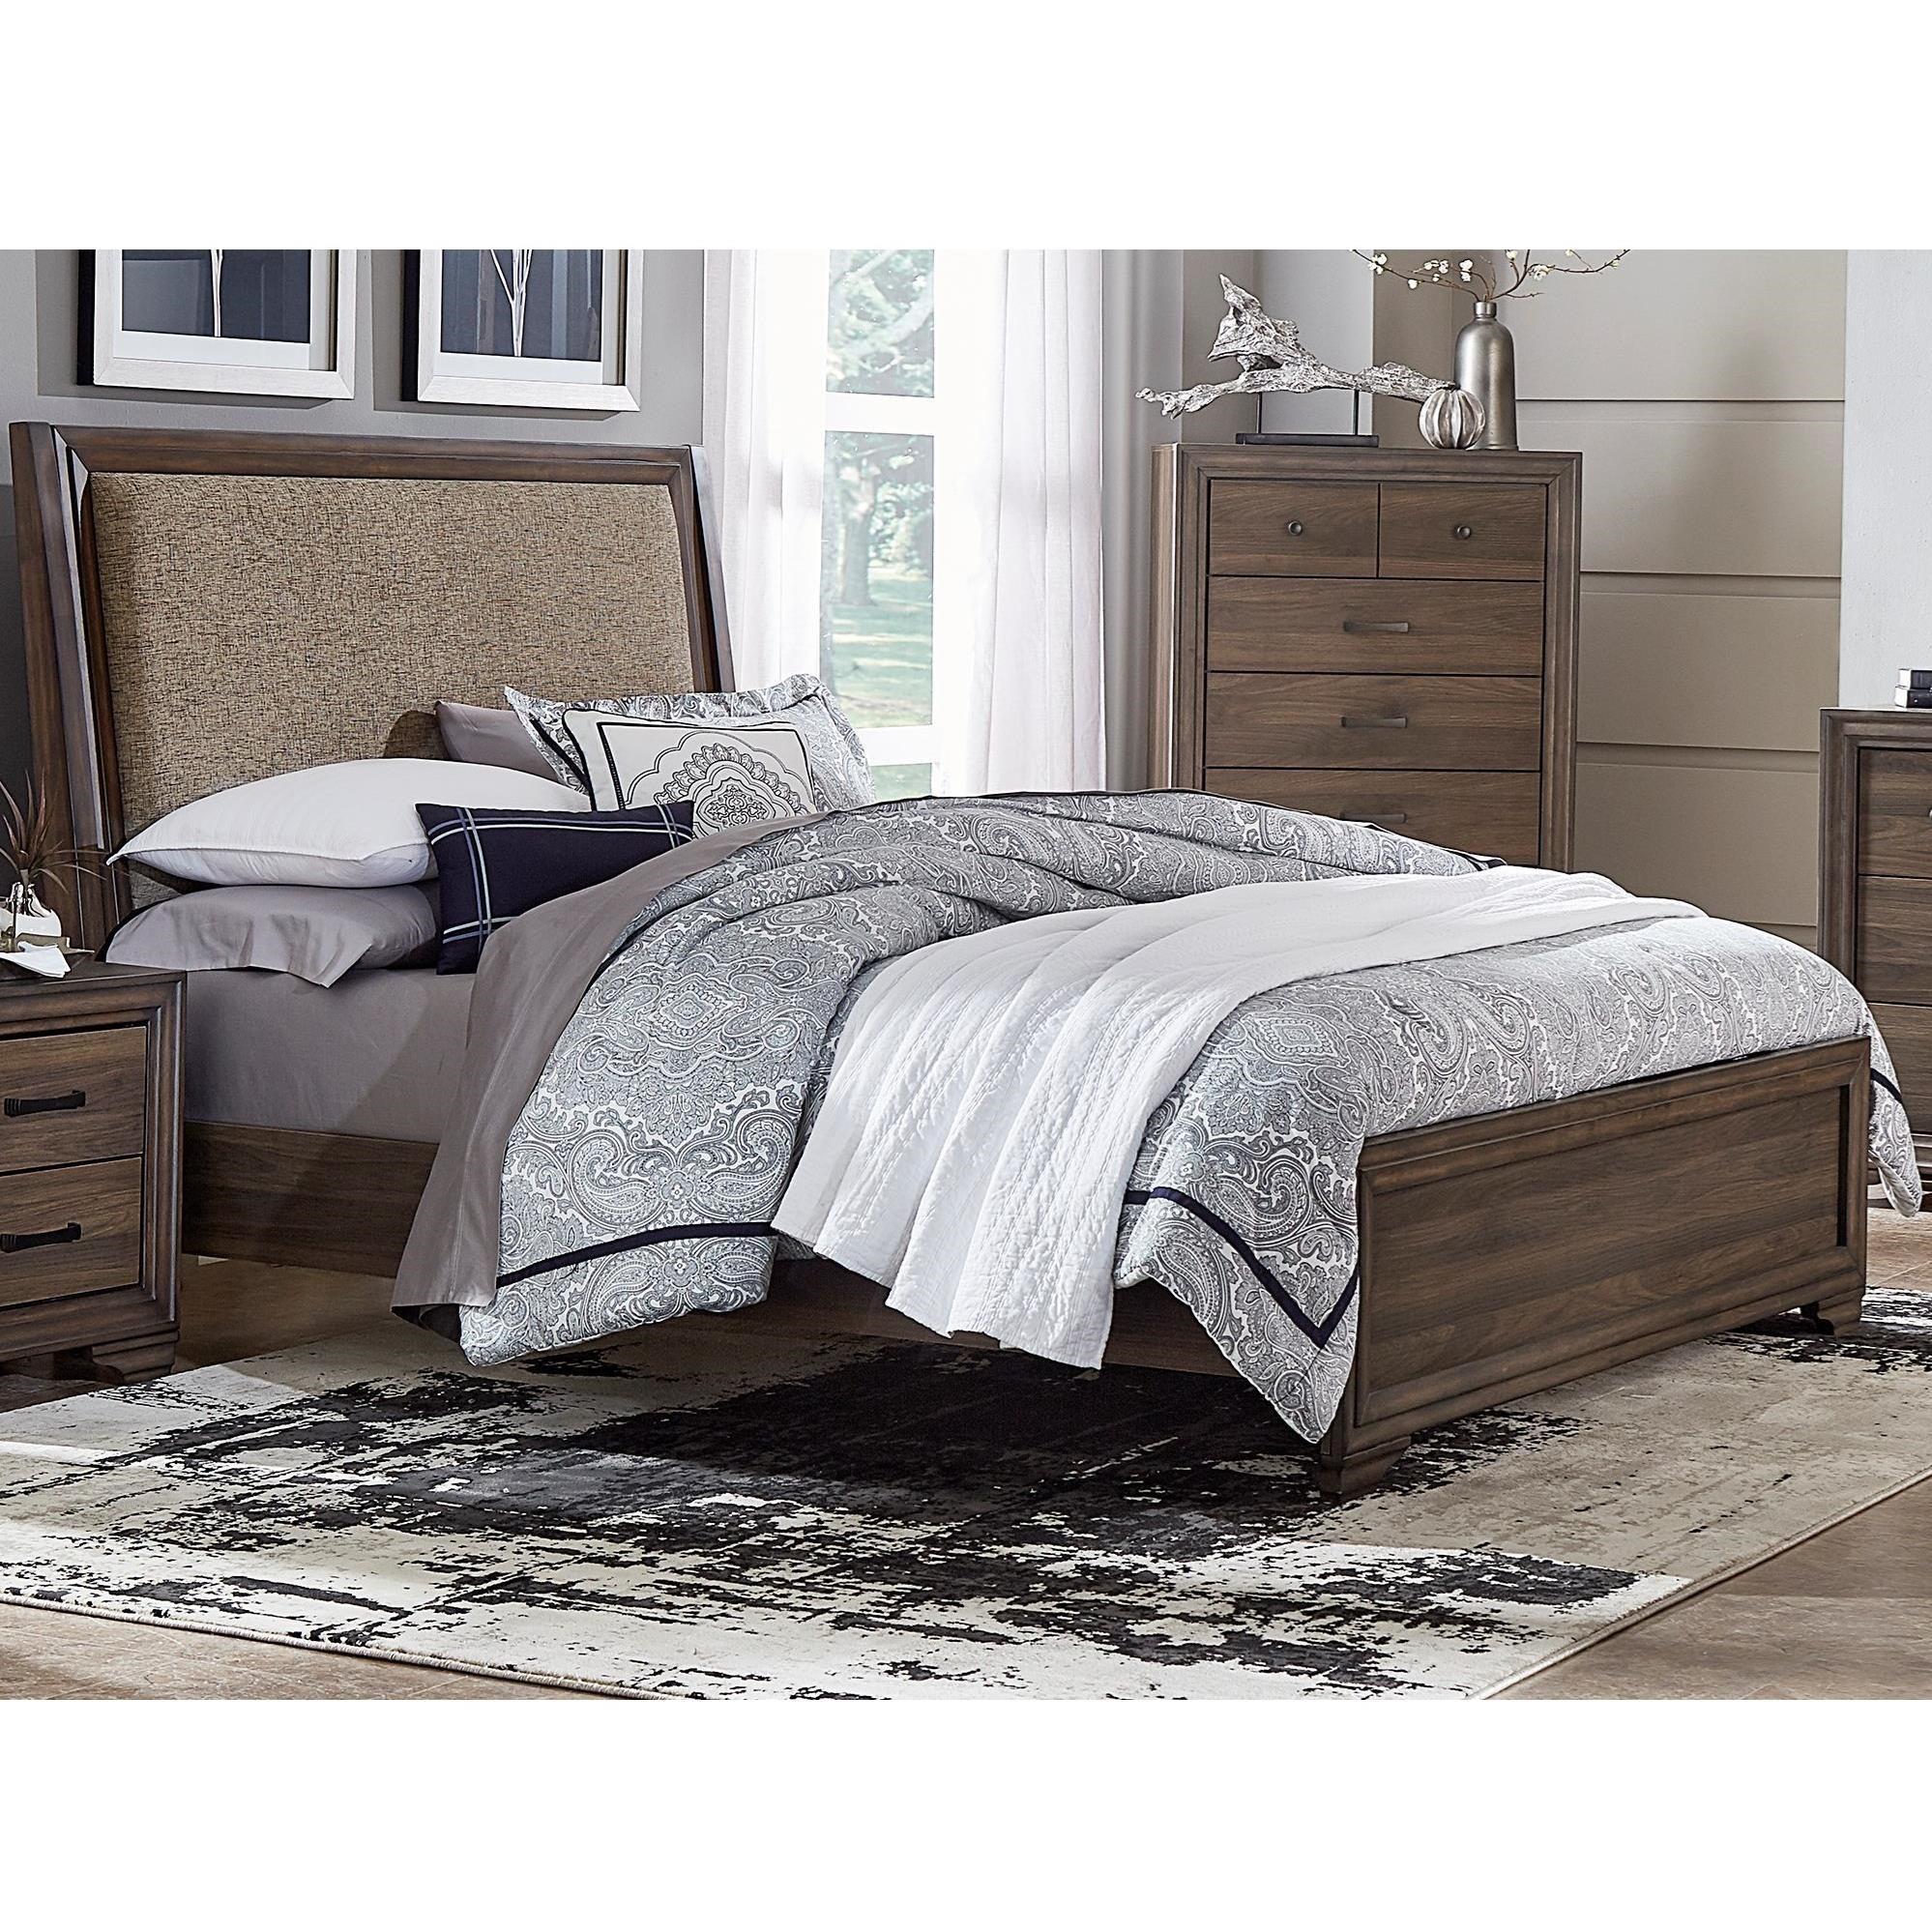 Clarksdale Contemporary King Upholstered Bed By Liberty Furniture